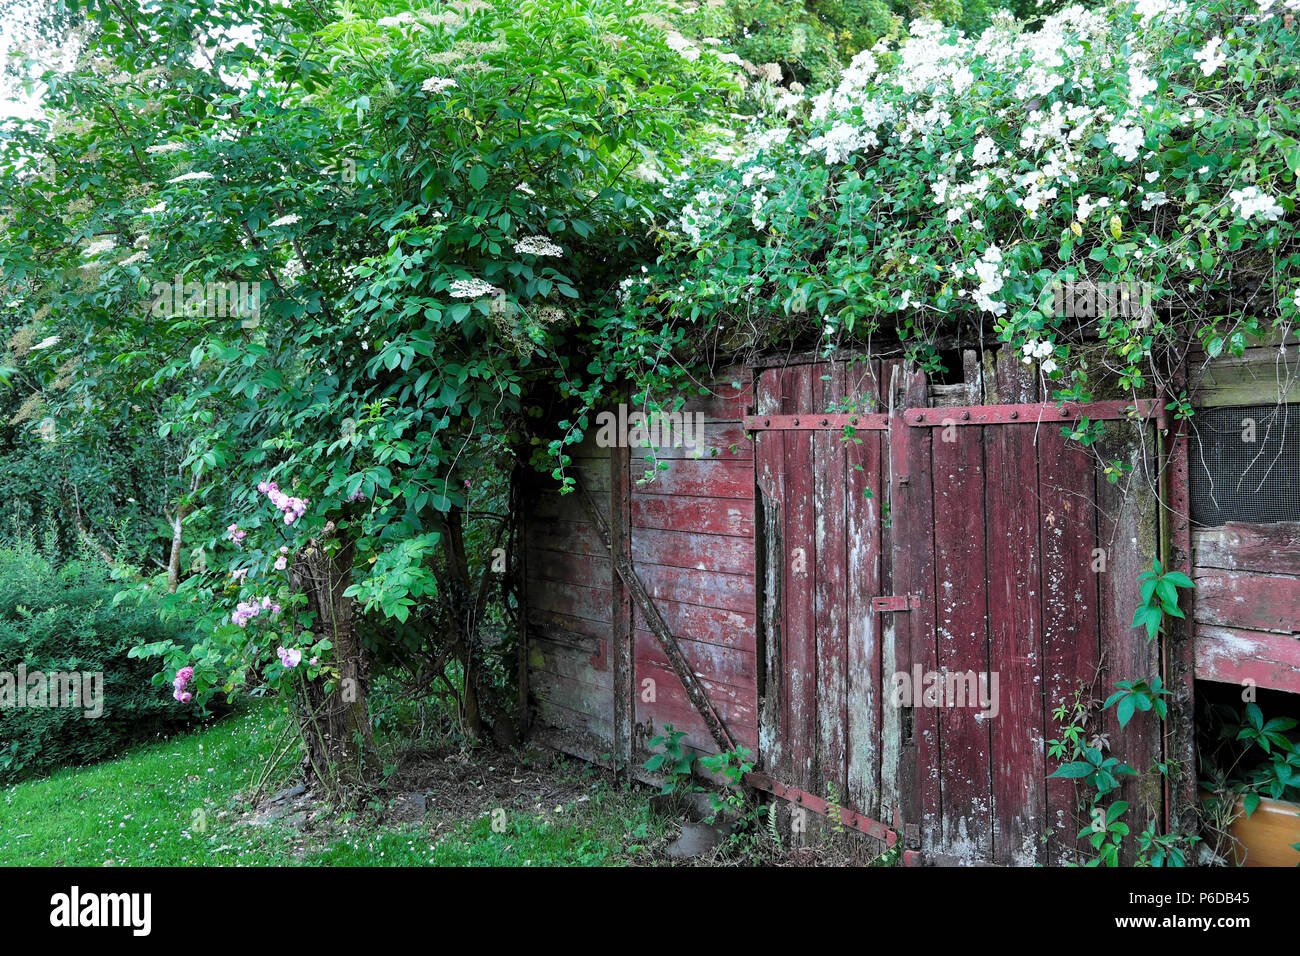 Rosa filipes Kiftsgate white rose rambling over an old railway carriage shed in rural Carmarthenshire Dyfed West Wales UK   KATHY DEWITT - Stock Image